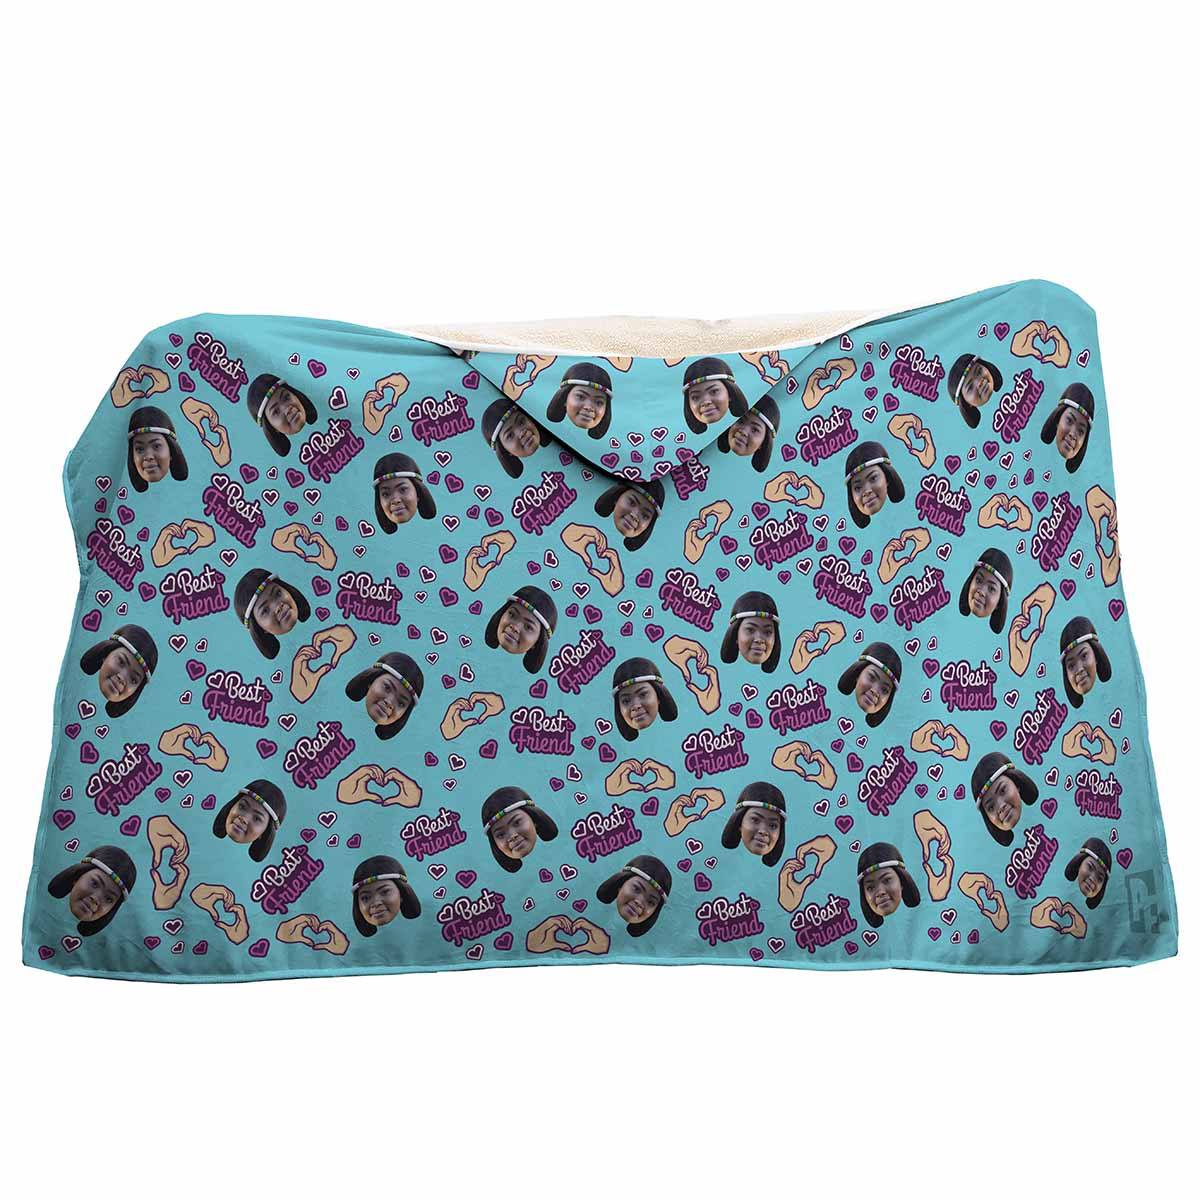 blue BFF for Her hooded blanket personalized with photo of face printed on it